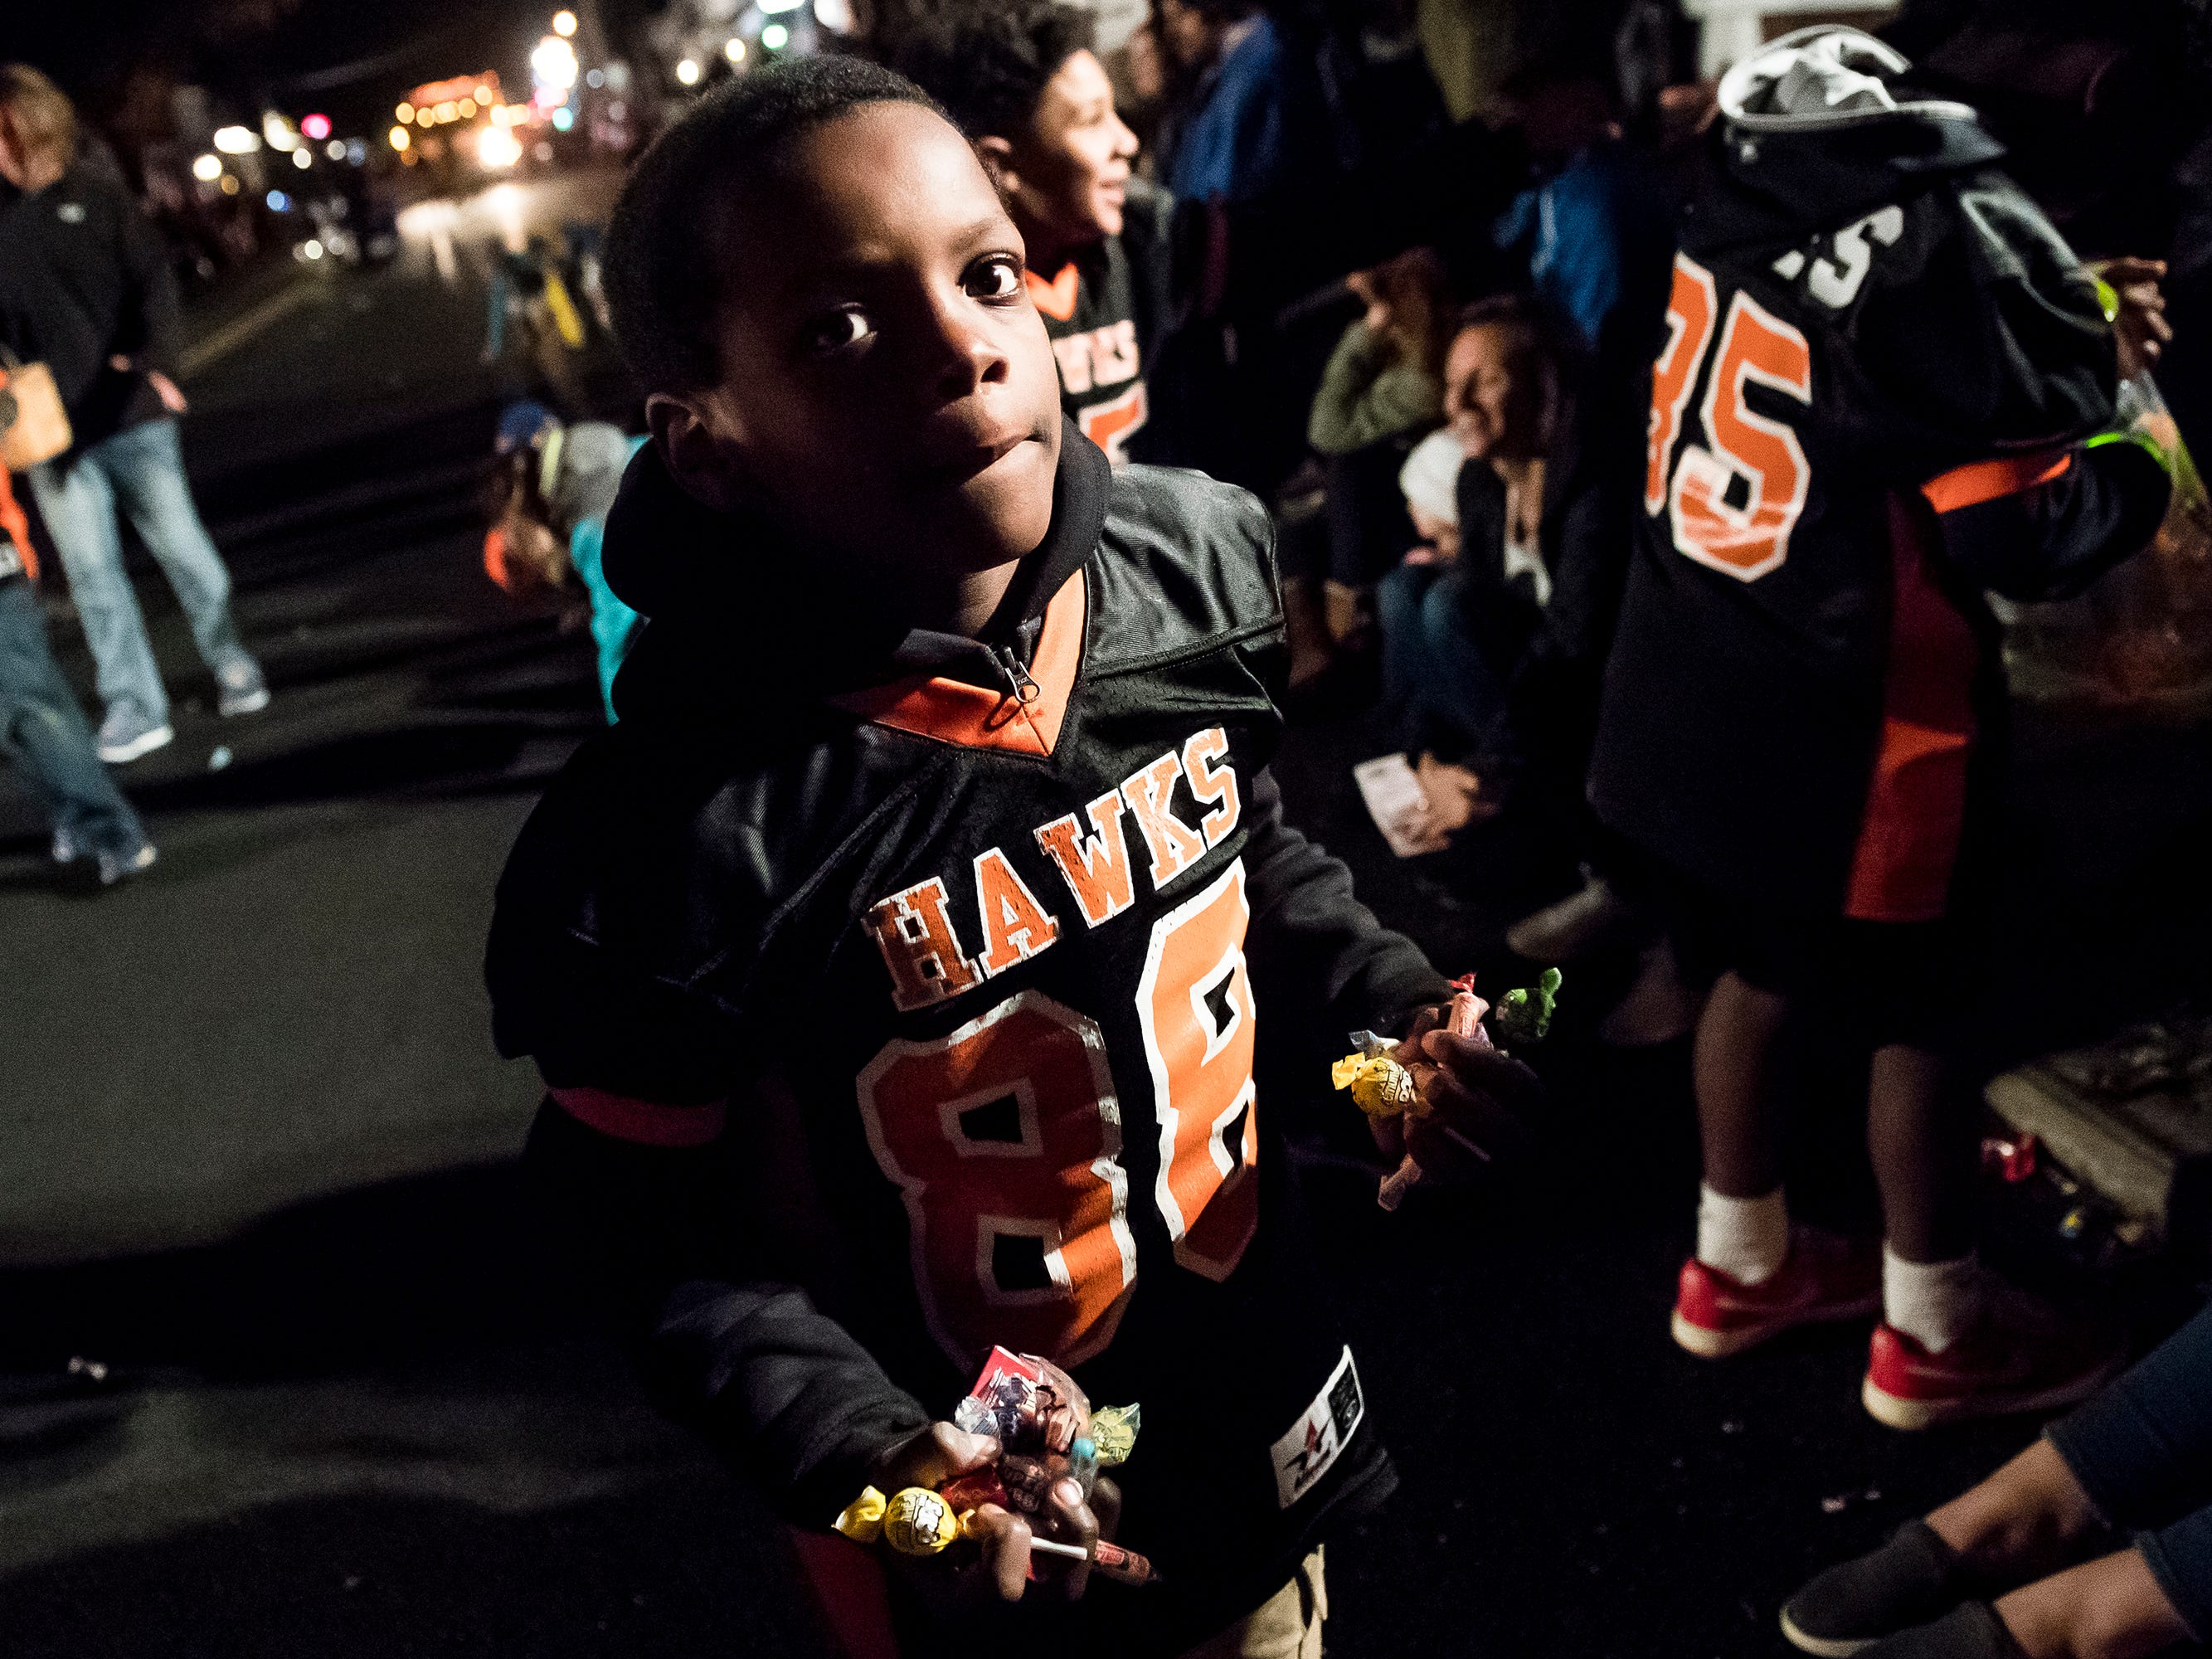 A young Hanover Nighthawk passes out handfuls of candy during the 77th annual Hanover Halloween parade on Thursday, October 25, 2018.